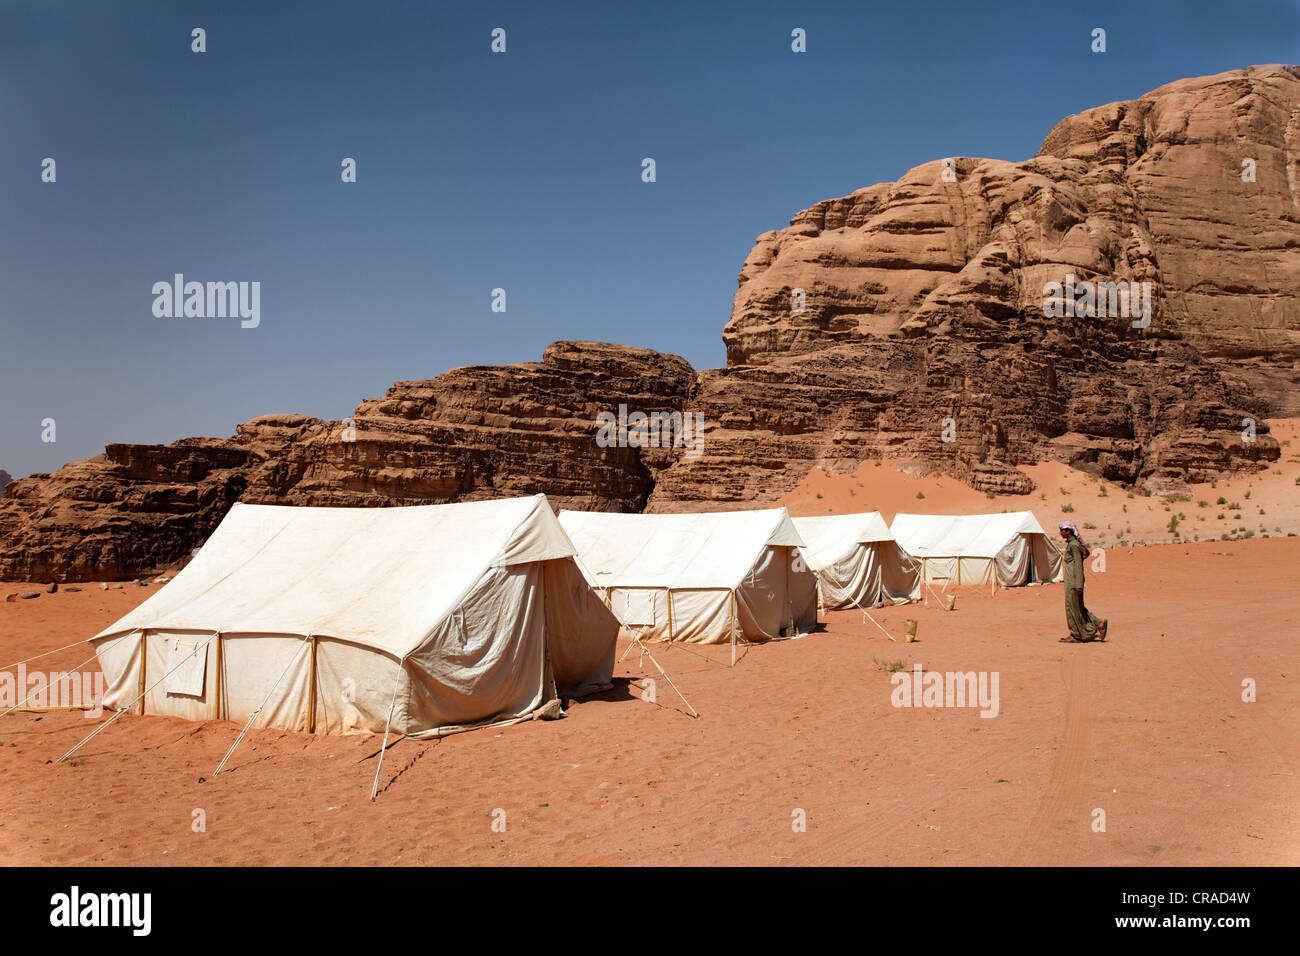 Camp for tourists, tents, Bedouin, mountains, desert, nature preserve, Wadi Rum, Hashemite Kingdom of Jordan, Middle - Stock Image